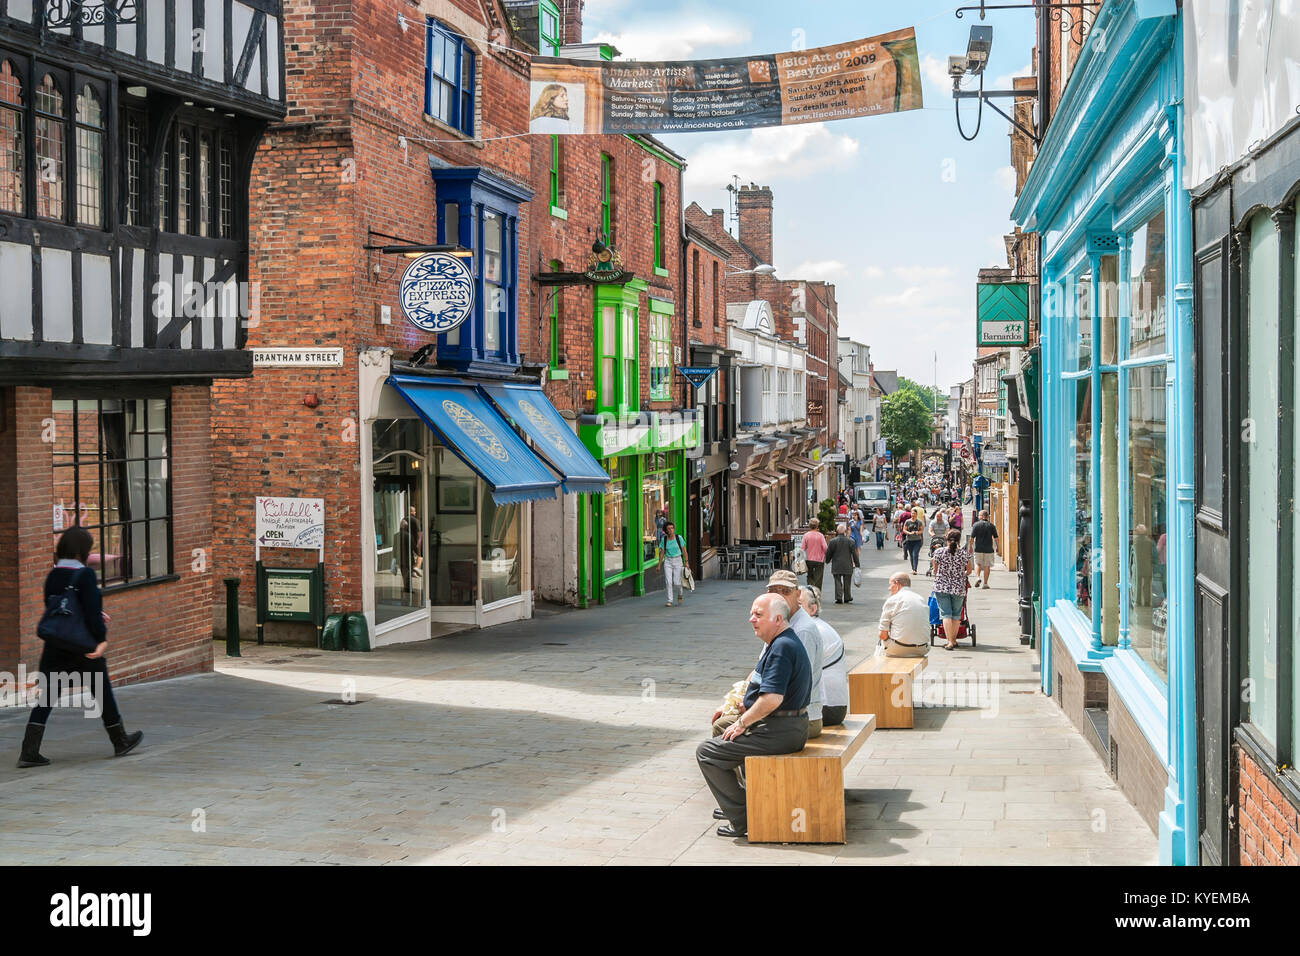 Busy Shopping Street in the City Centre of Lincoln, East England. | Moderne Einkaufstrasse in der Innenstadt von - Stock Image